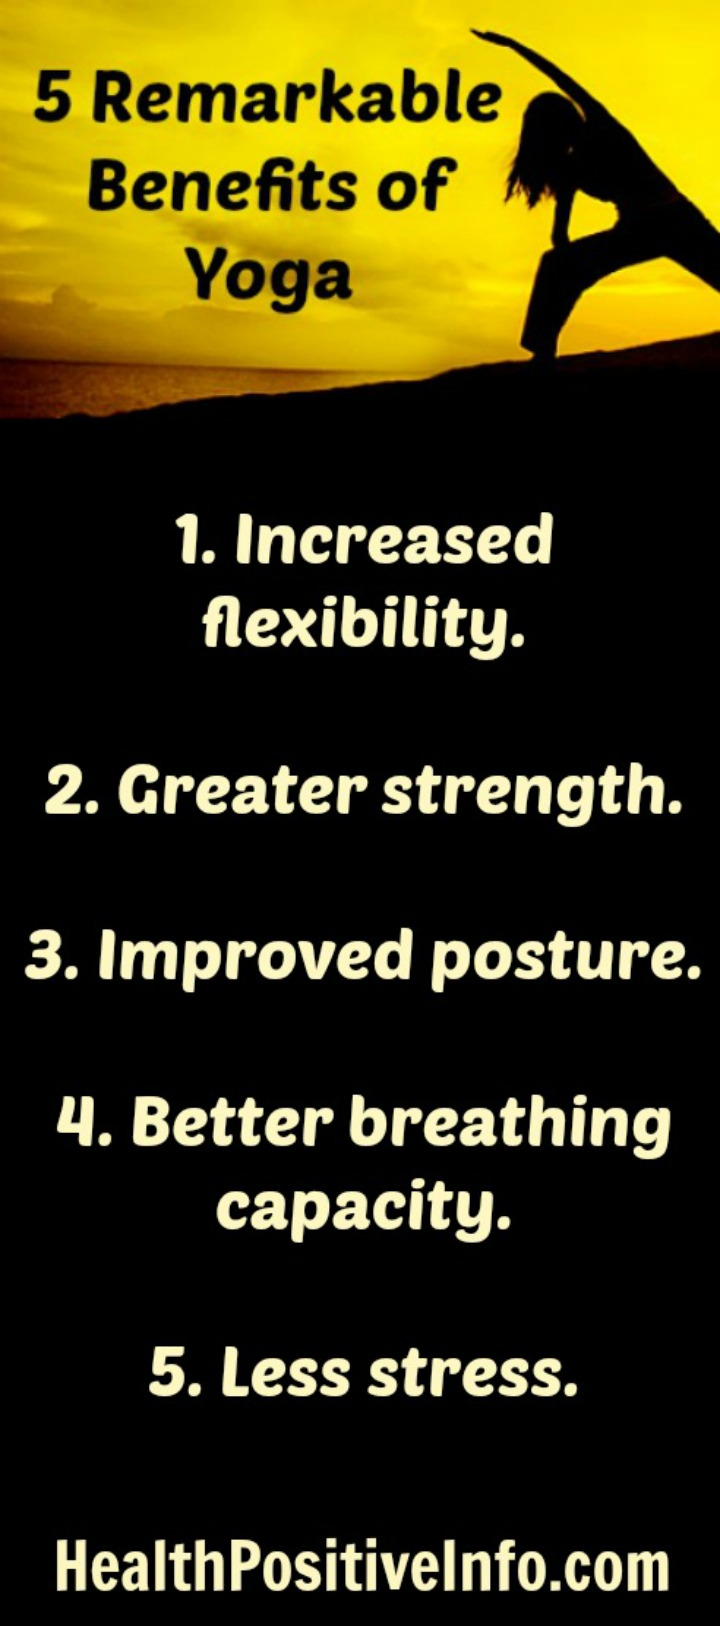 5 Remarkable Benefits of Yoga - https://healthpositiveinfo.com/5-remarkable-benefits-of-yoga.html